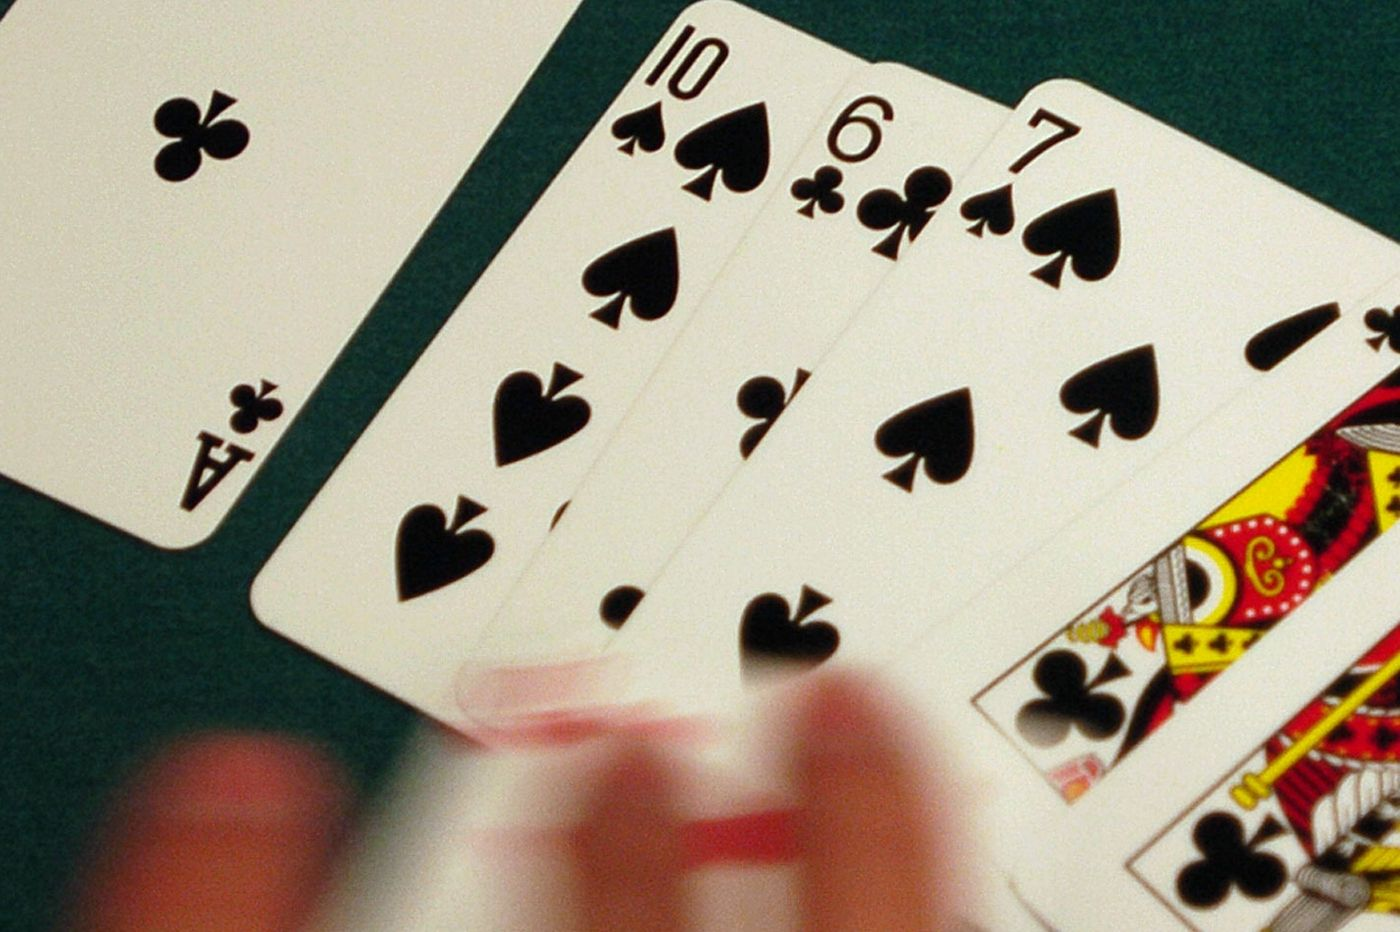 Toll Poker Games